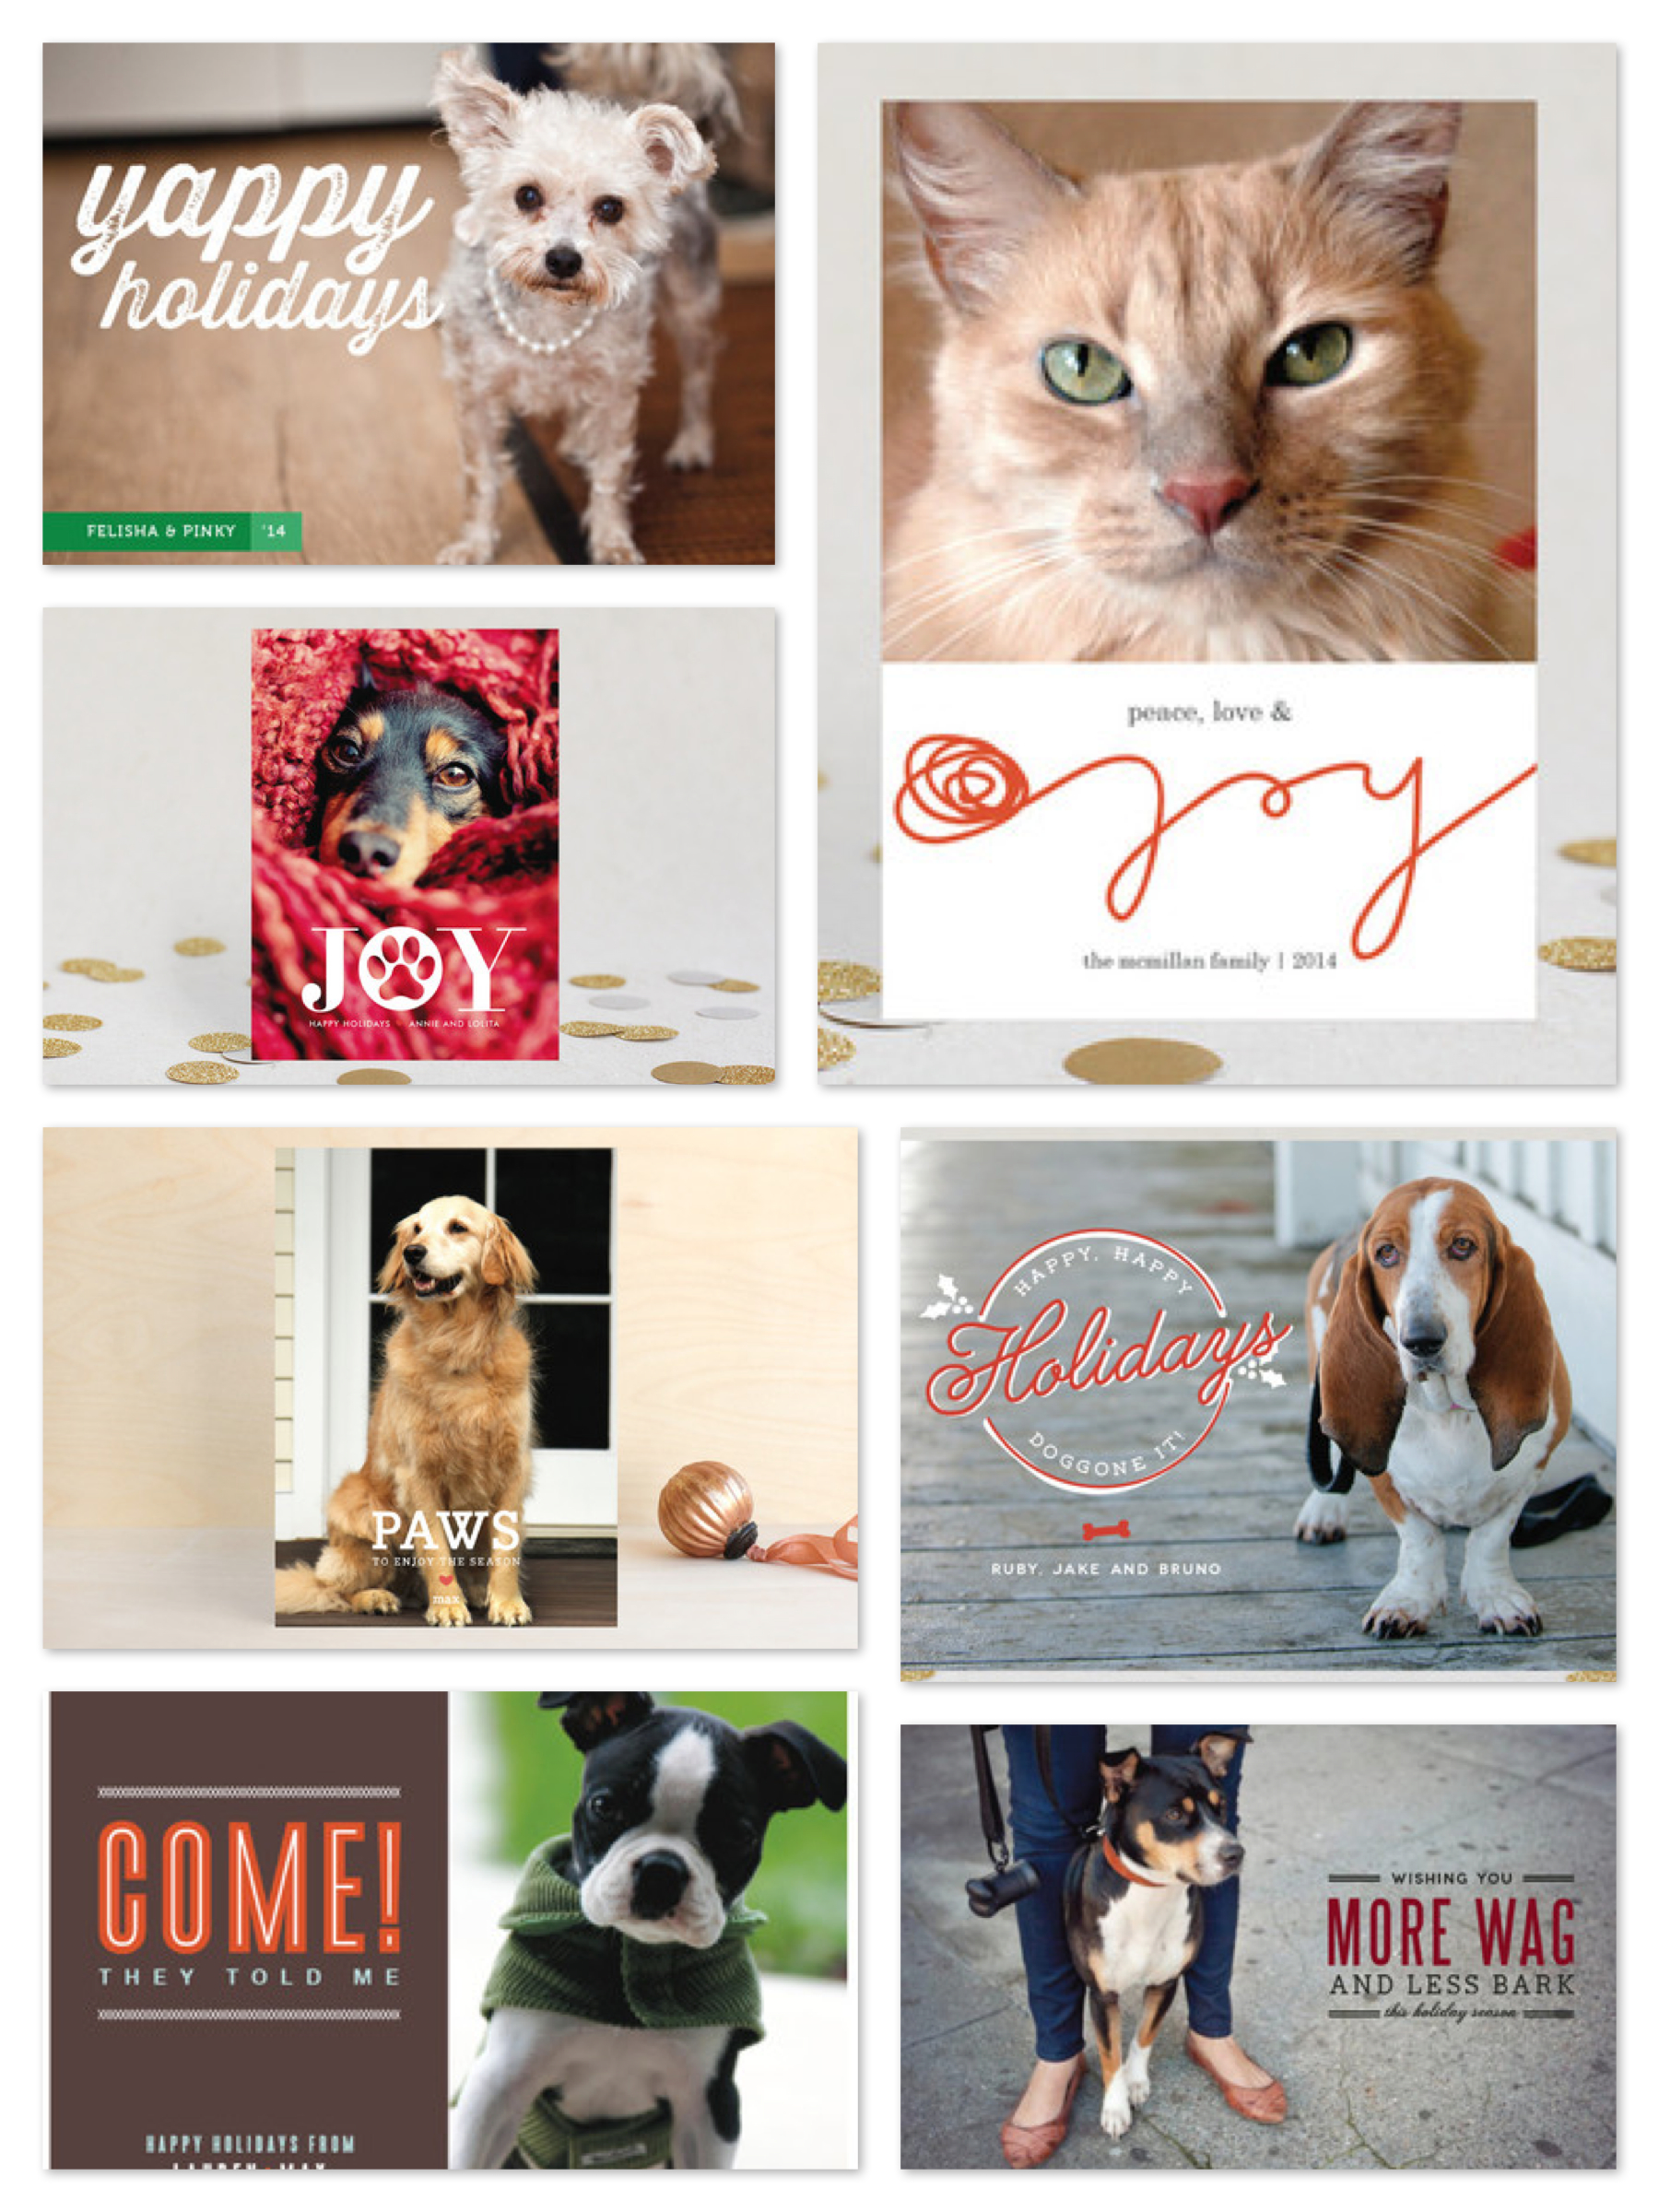 pet photo holiday cards best pet holiday cards - Pet Holiday Cards